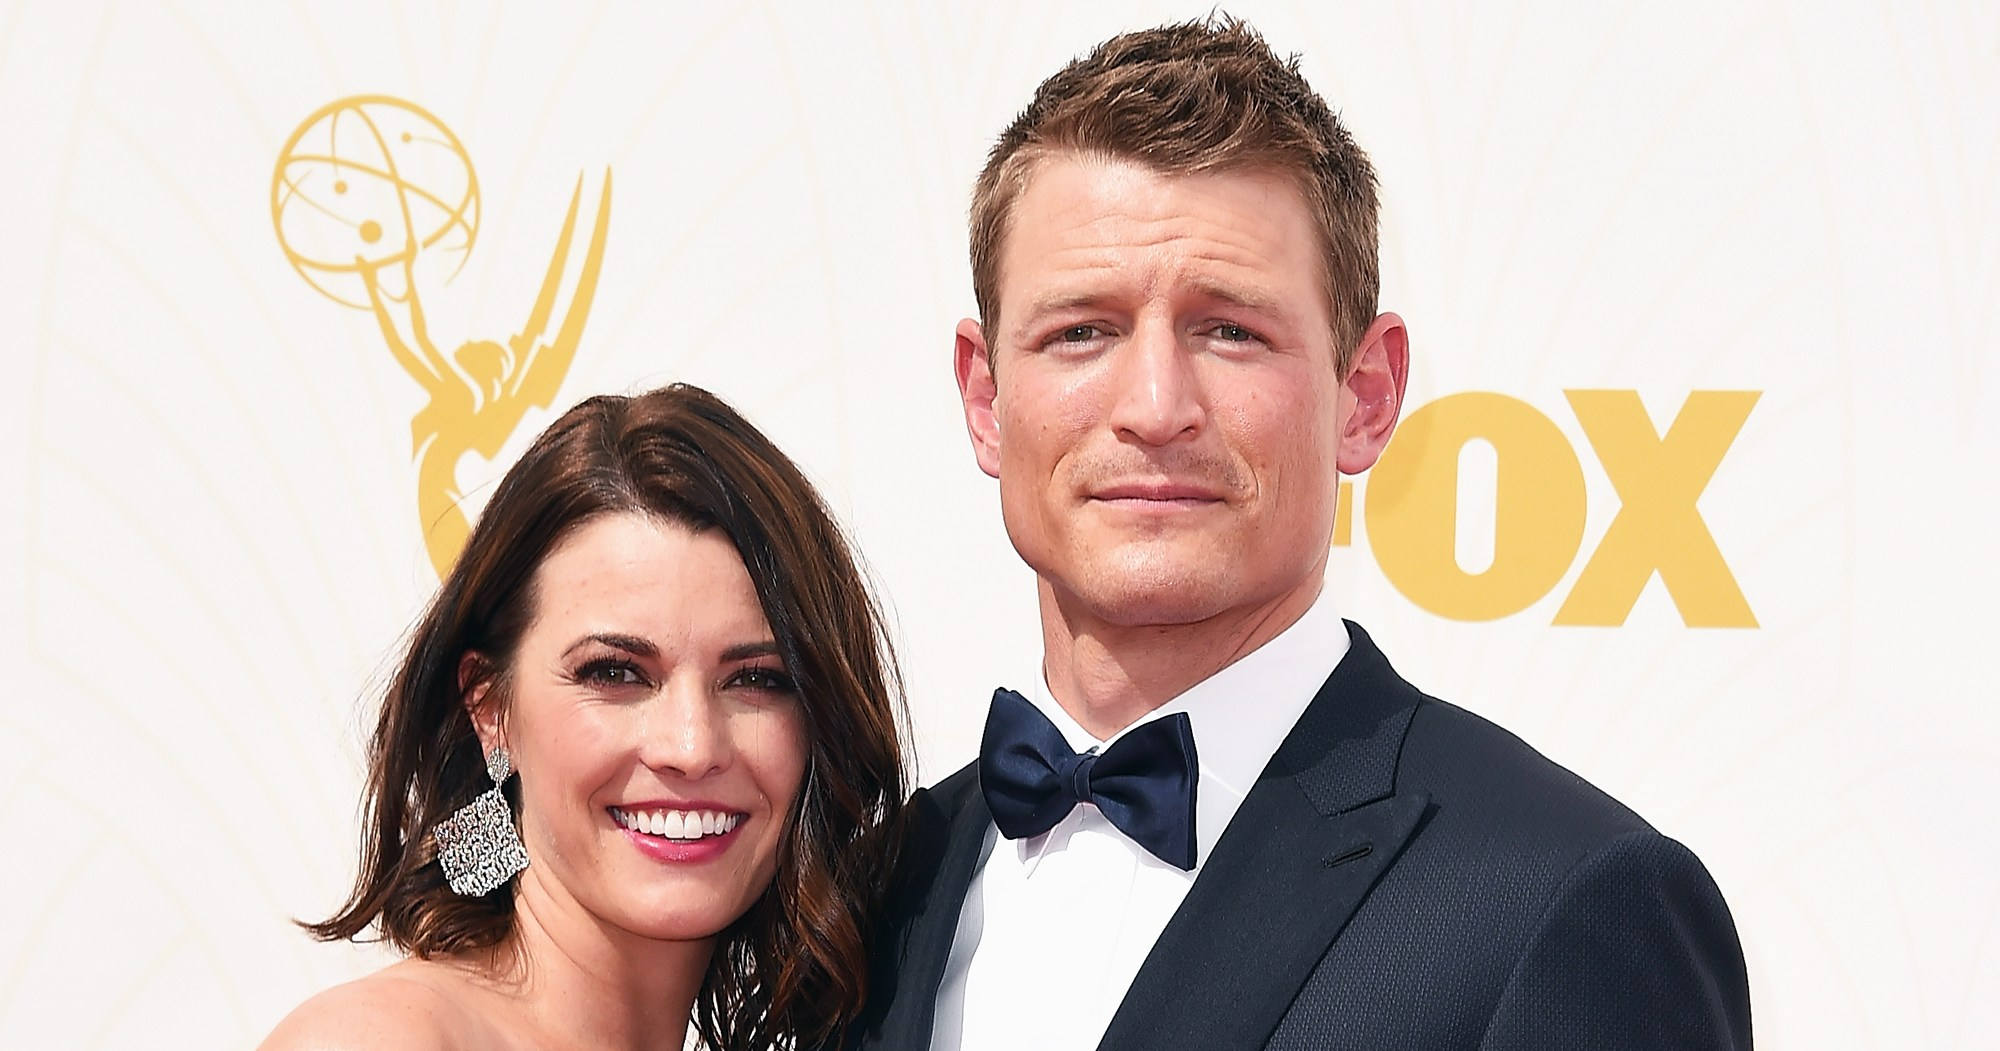 Philip Winchester and Wife Megan Are Expecting Baby No. 2